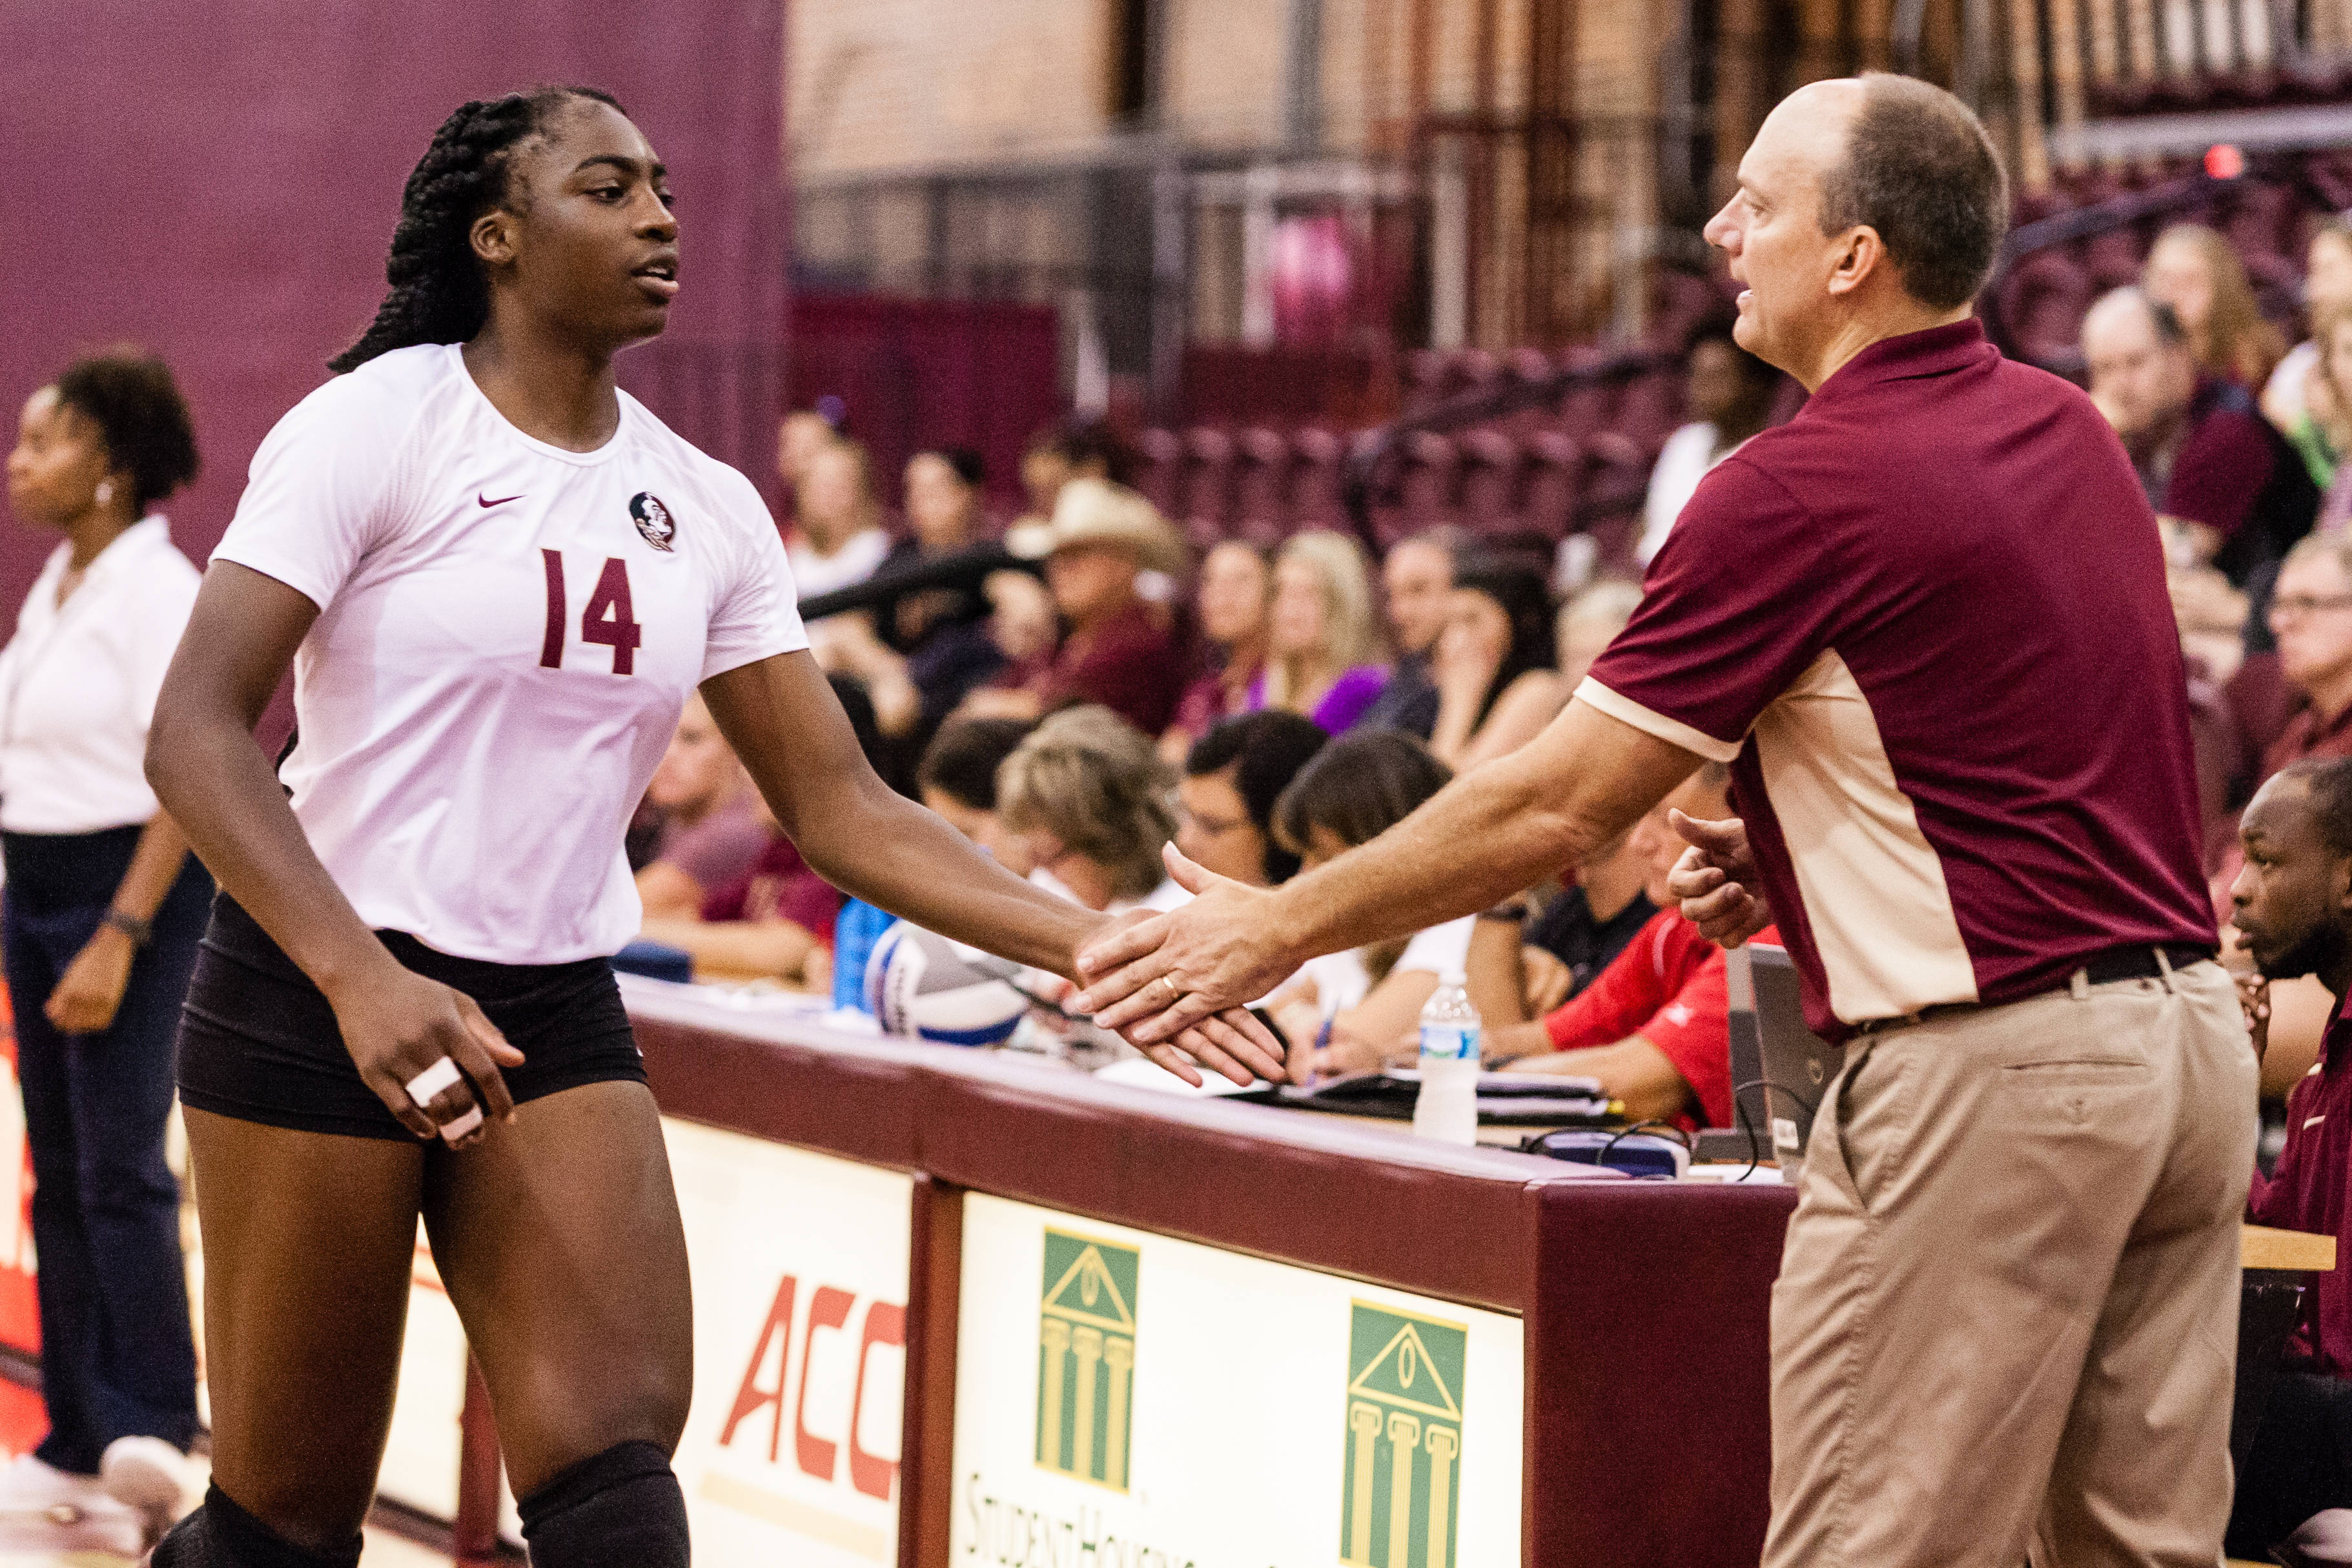 Mercedes Vaughn comes off the floor and is greeted by Coach Hulsmeyer